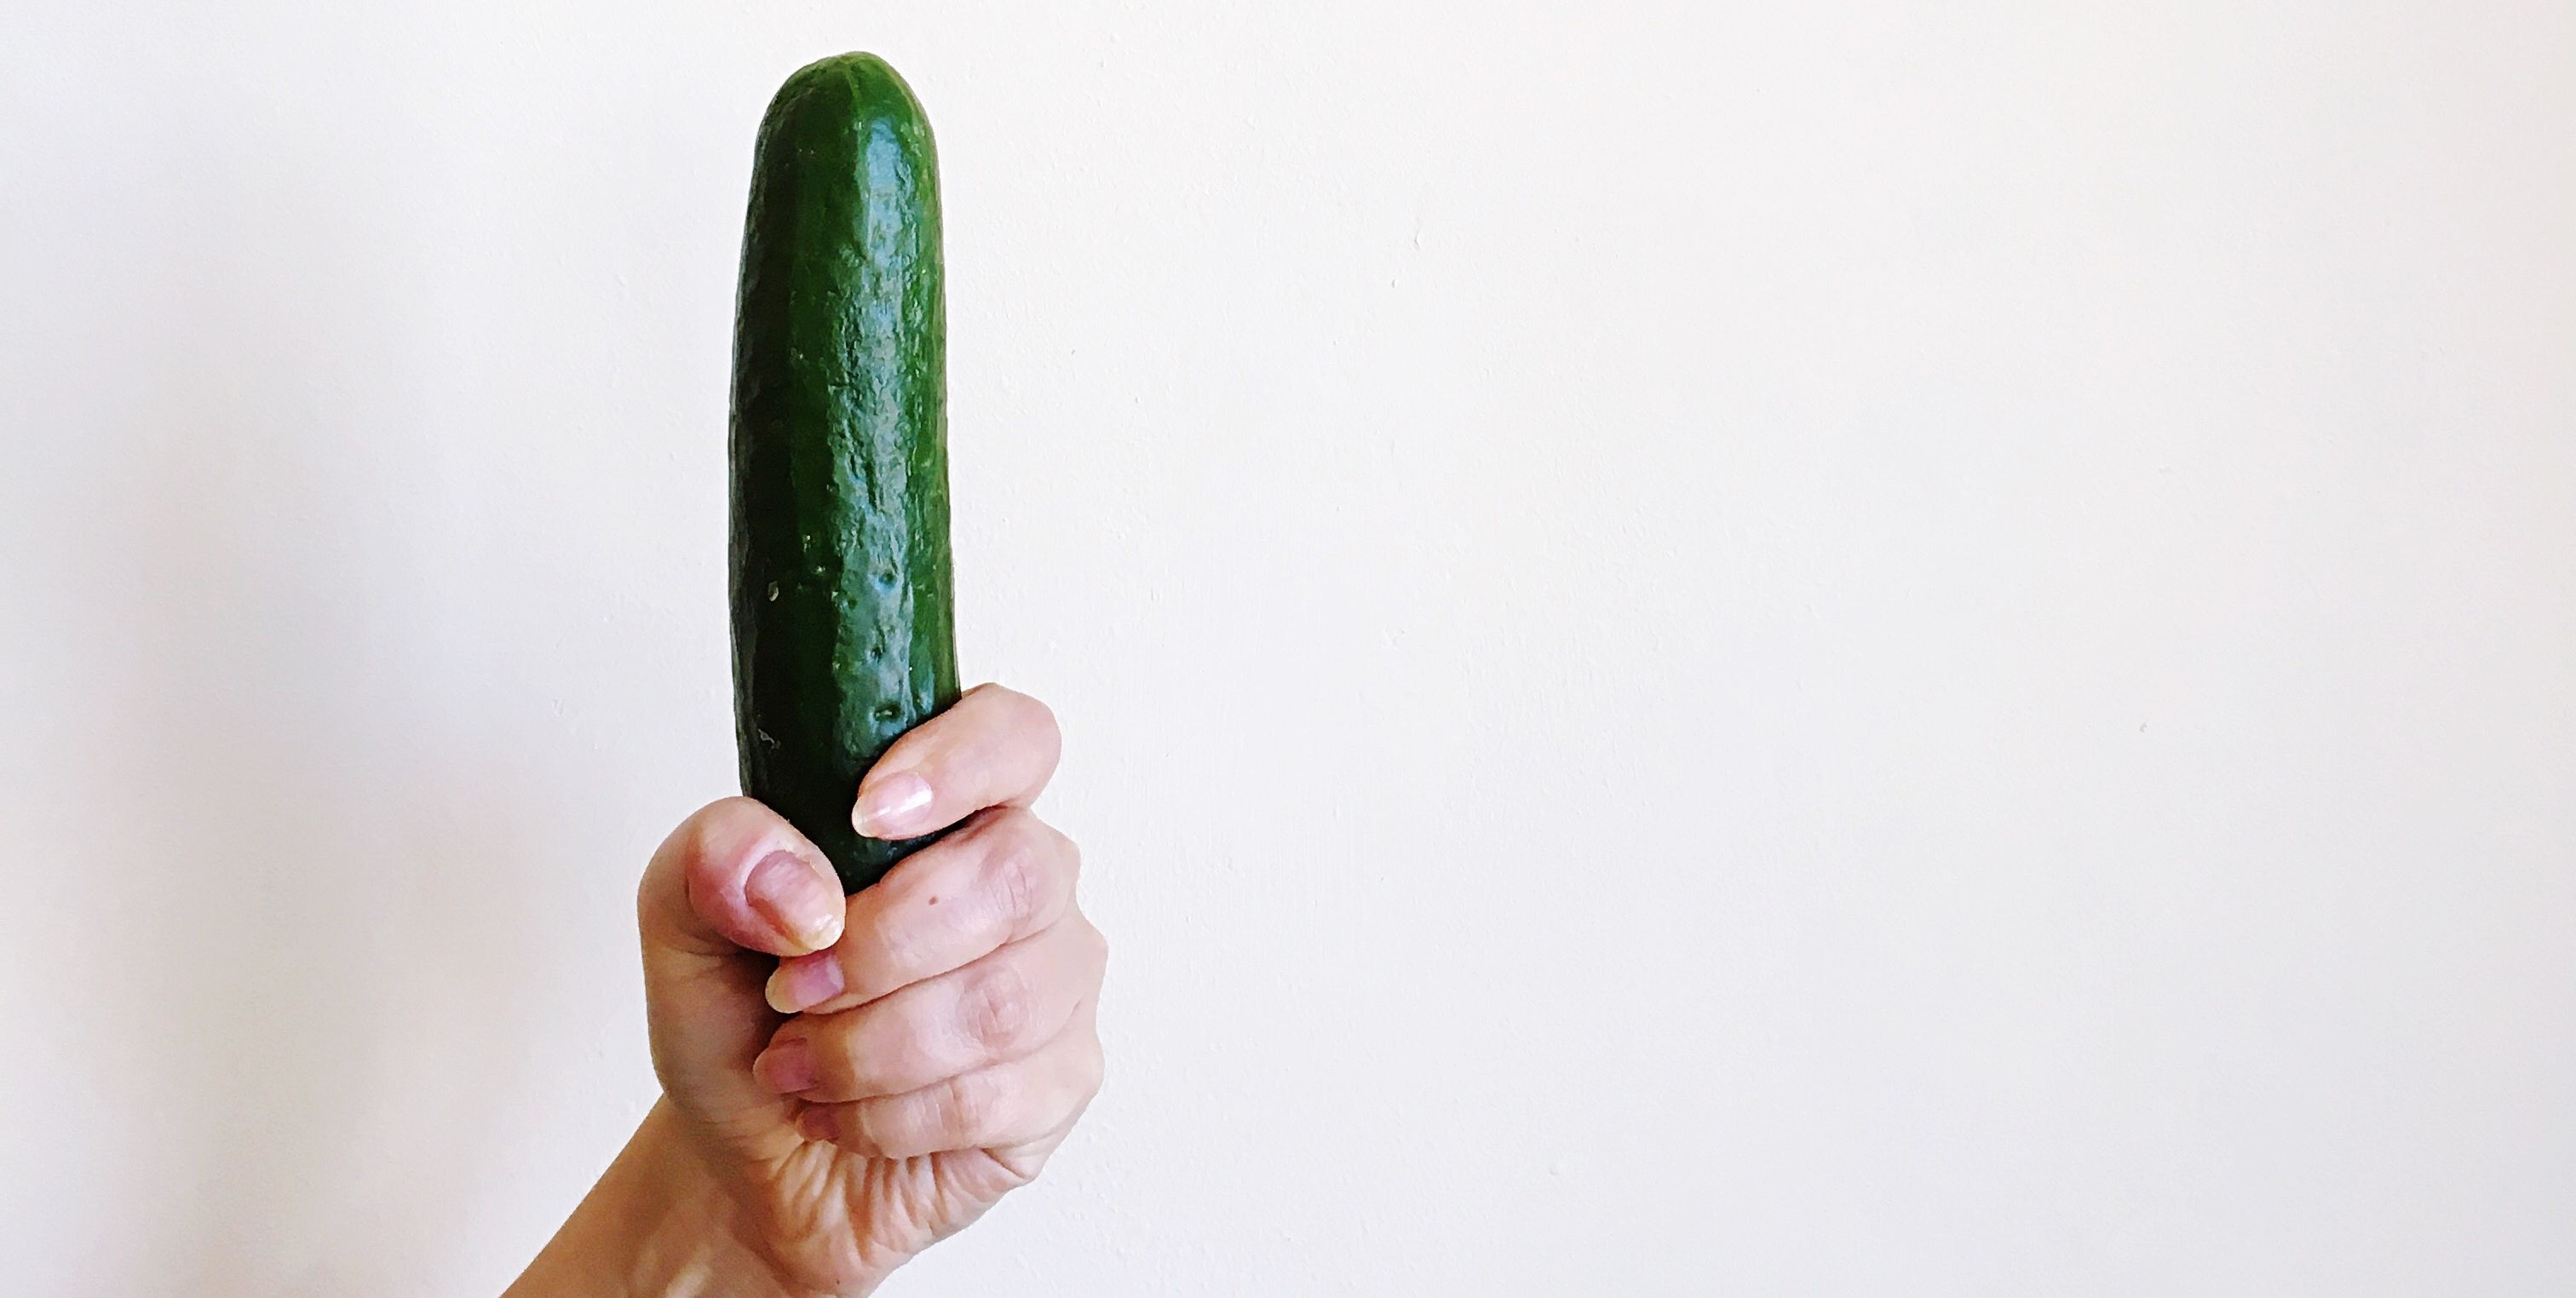 Close-Up Of Woman Holding Zucchini Against White Background